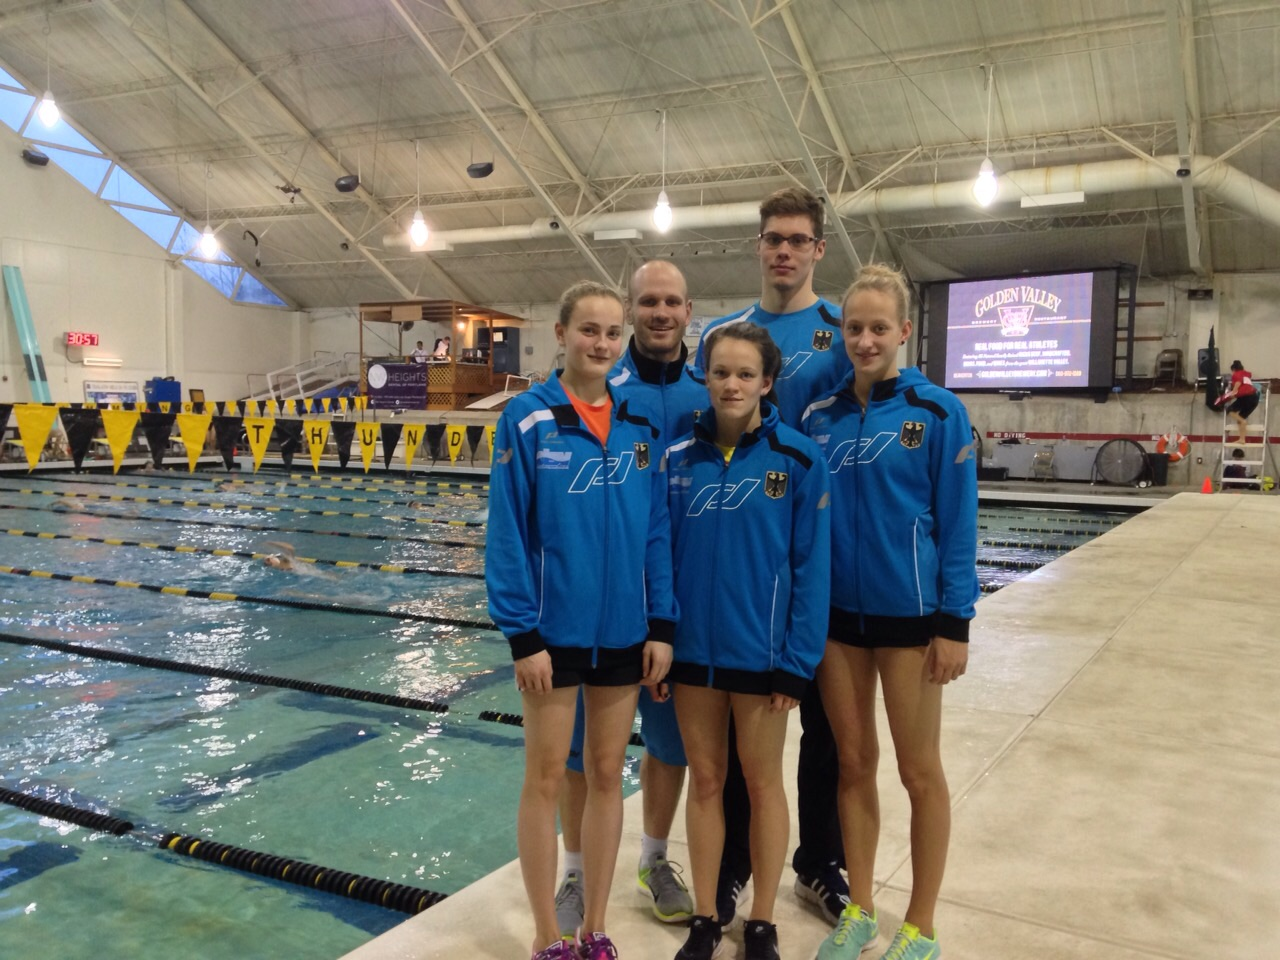 v.l.n.r.: Laura Riedemann, Marian Bobe (Trainer), Julia Willers, David Thomasberger, Mandy Feldbinder beim Schwimmmeeting in Portland